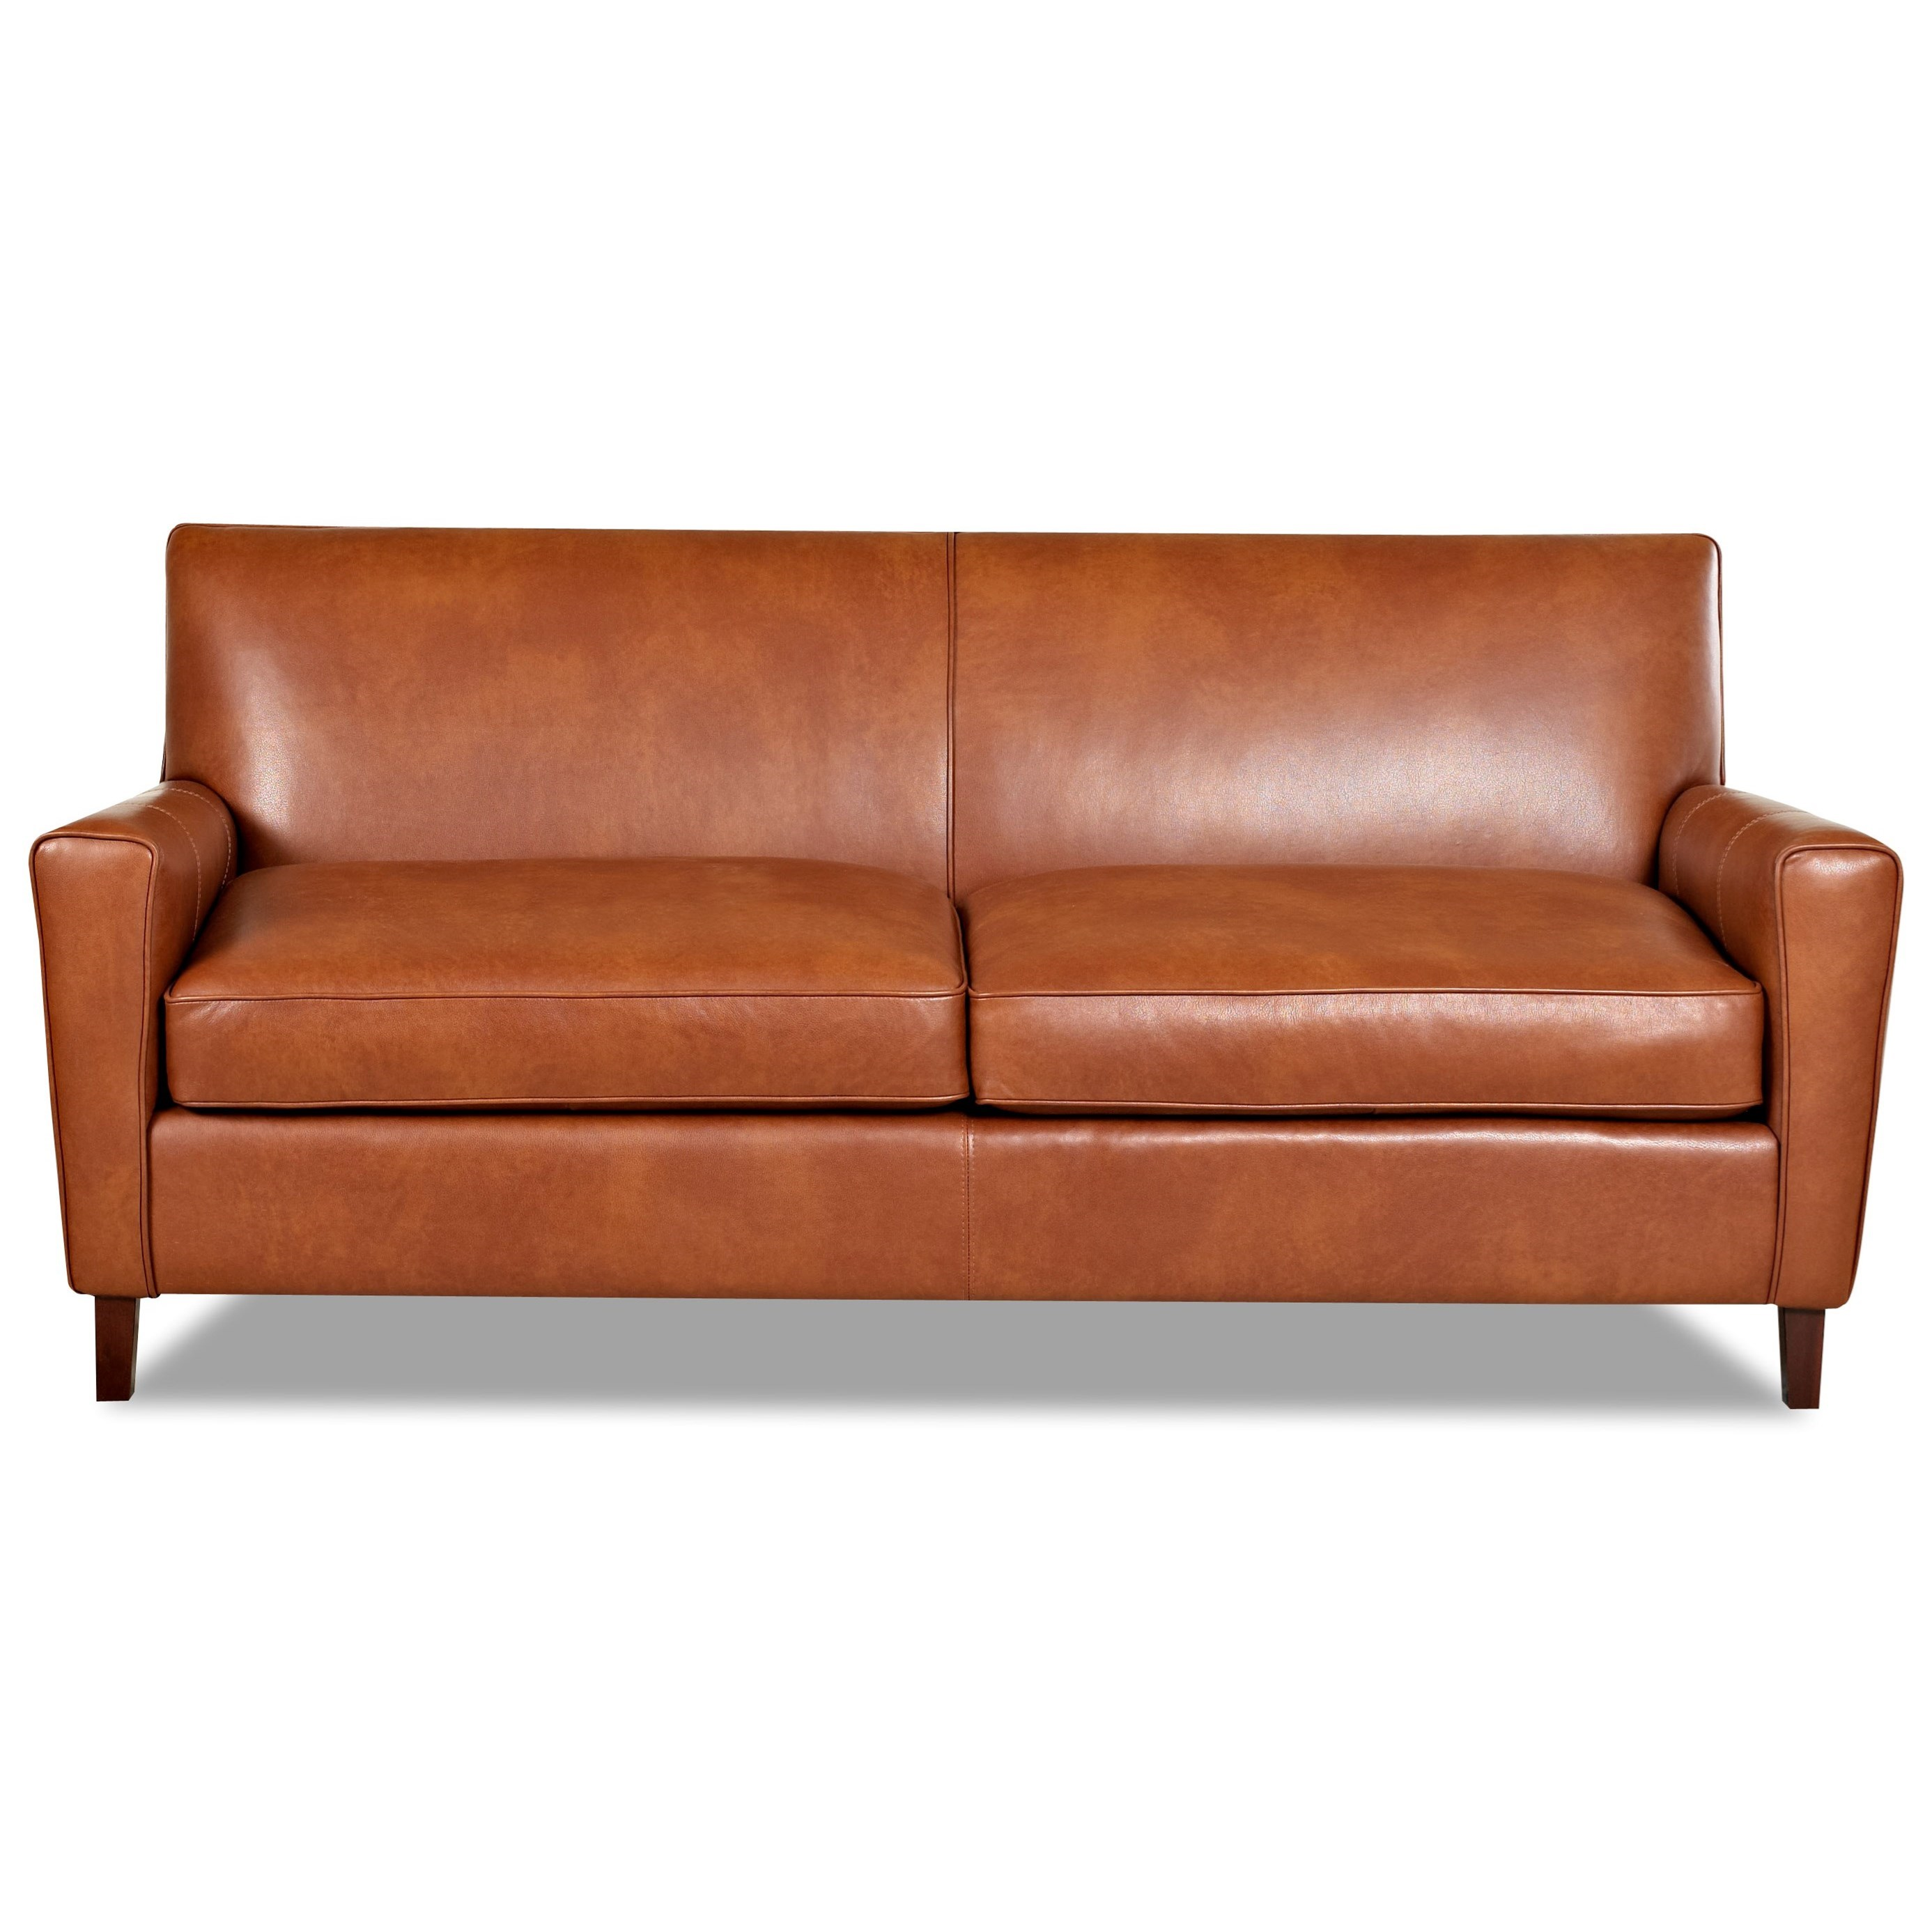 Goldie Sofa by Klaussner at Northeast Factory Direct